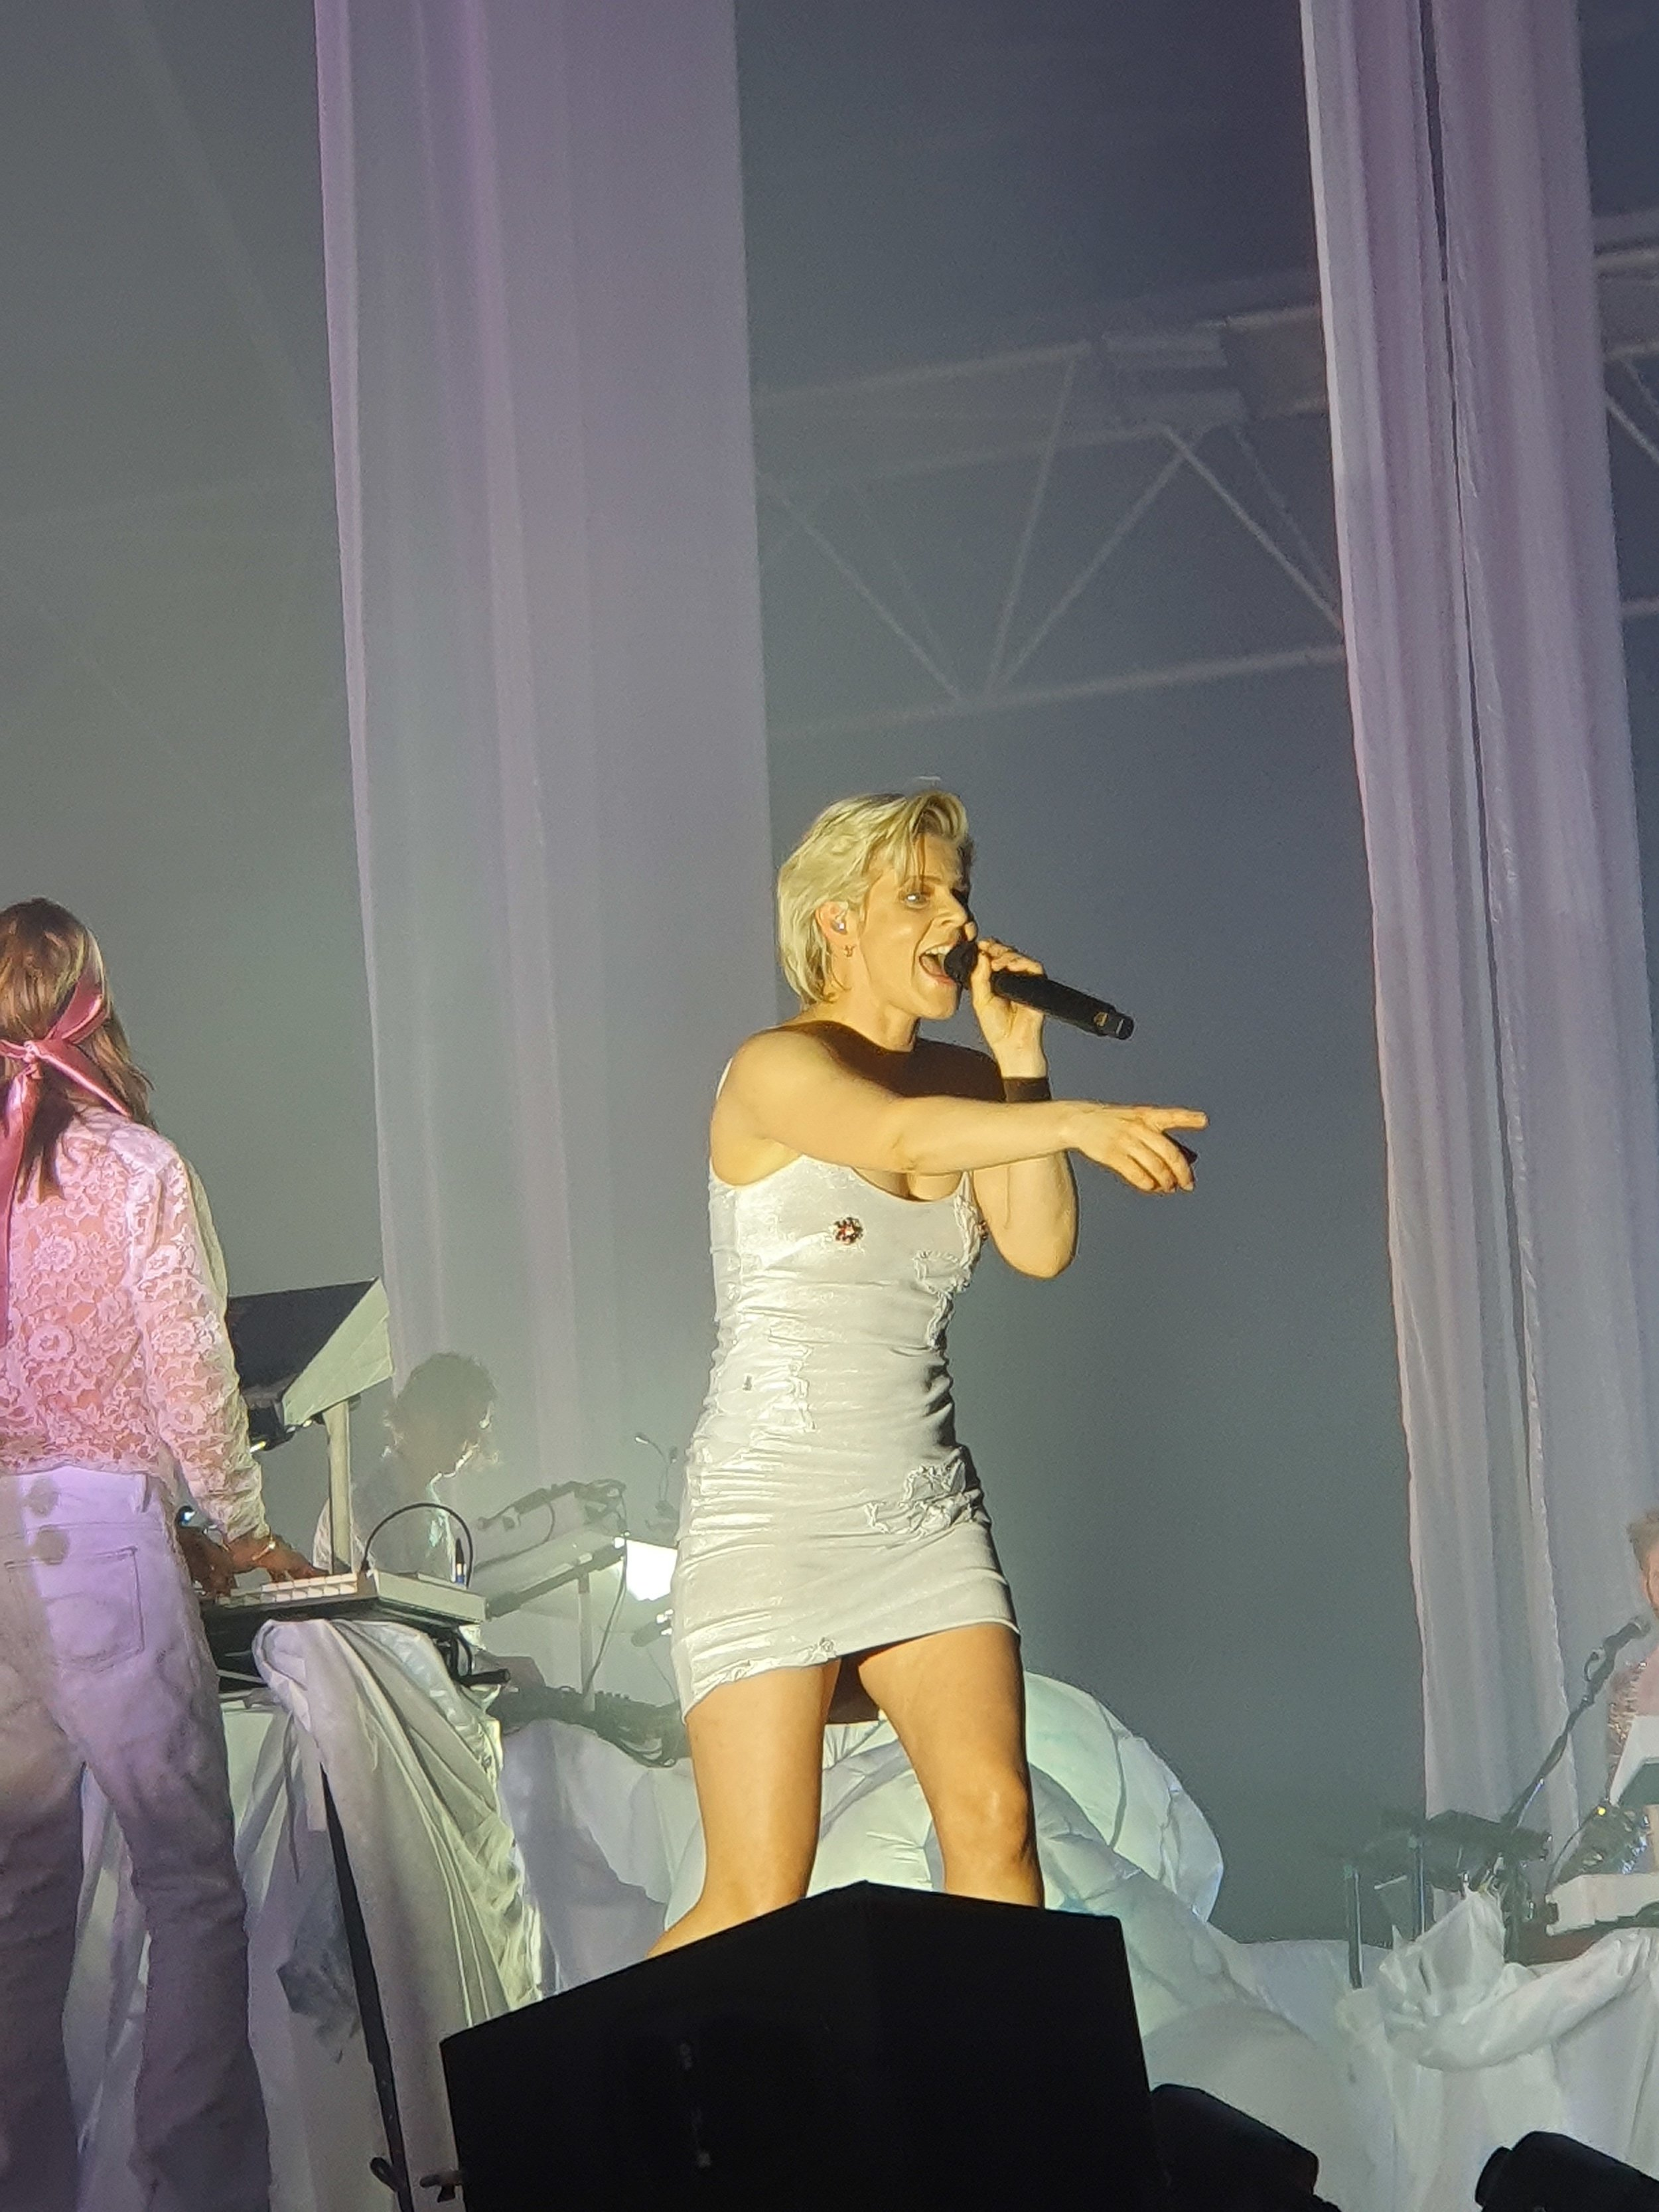 ROBYNALEXANDRA PALACE [12/04/19] - When Robyn made her long-awaited return to London last week, the results were simply glorious.